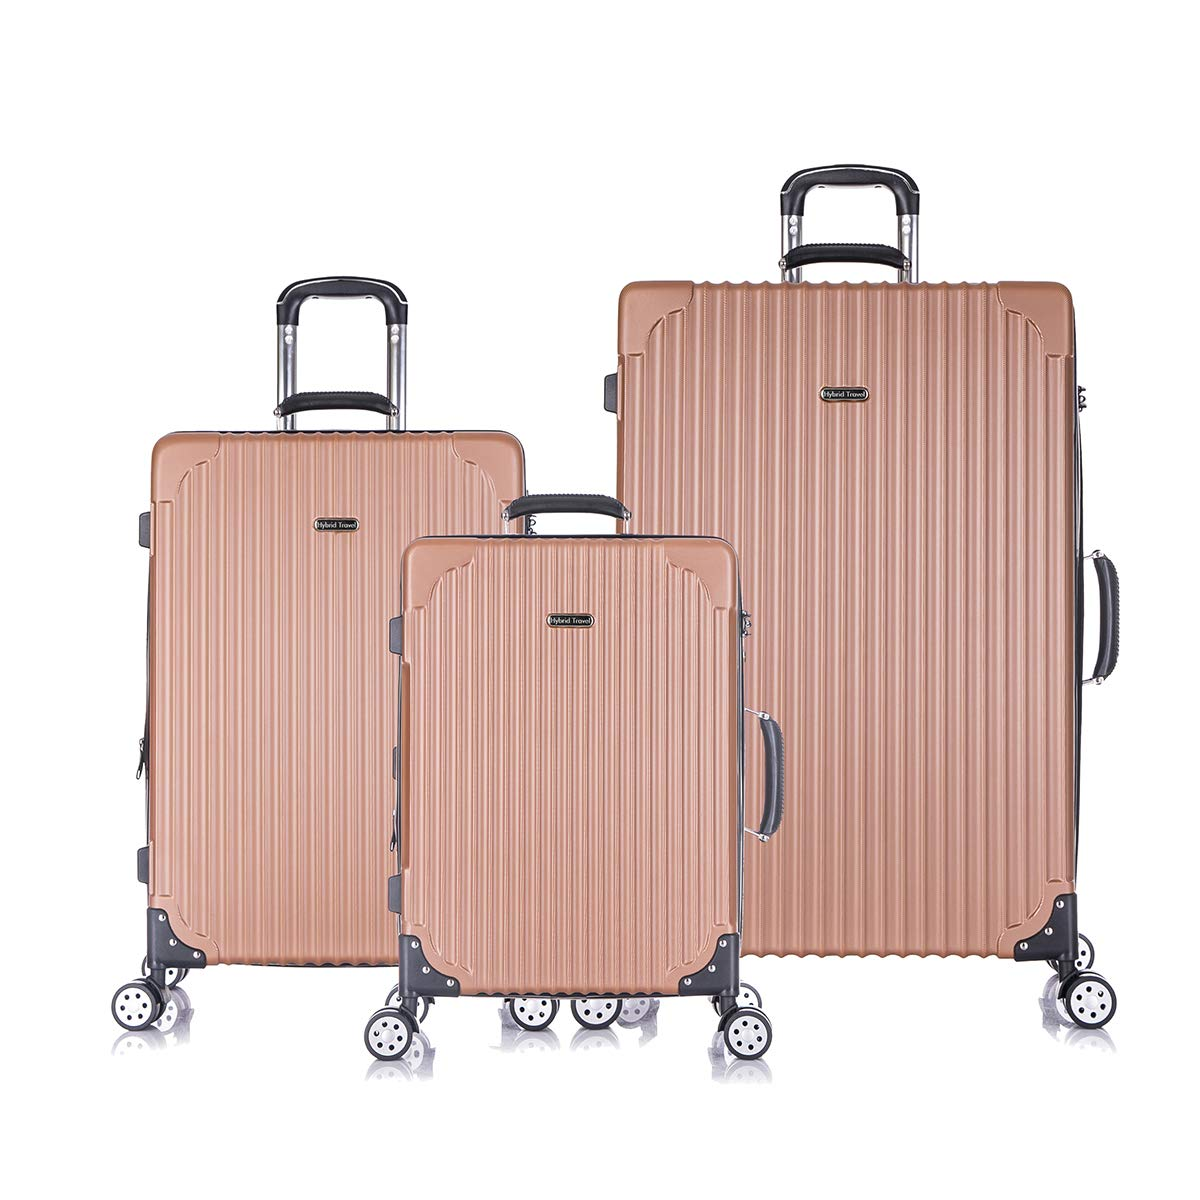 3 PC Luggage Set Durable Phone Charge Feature Suitecase LUG3 LY69 BRONZE